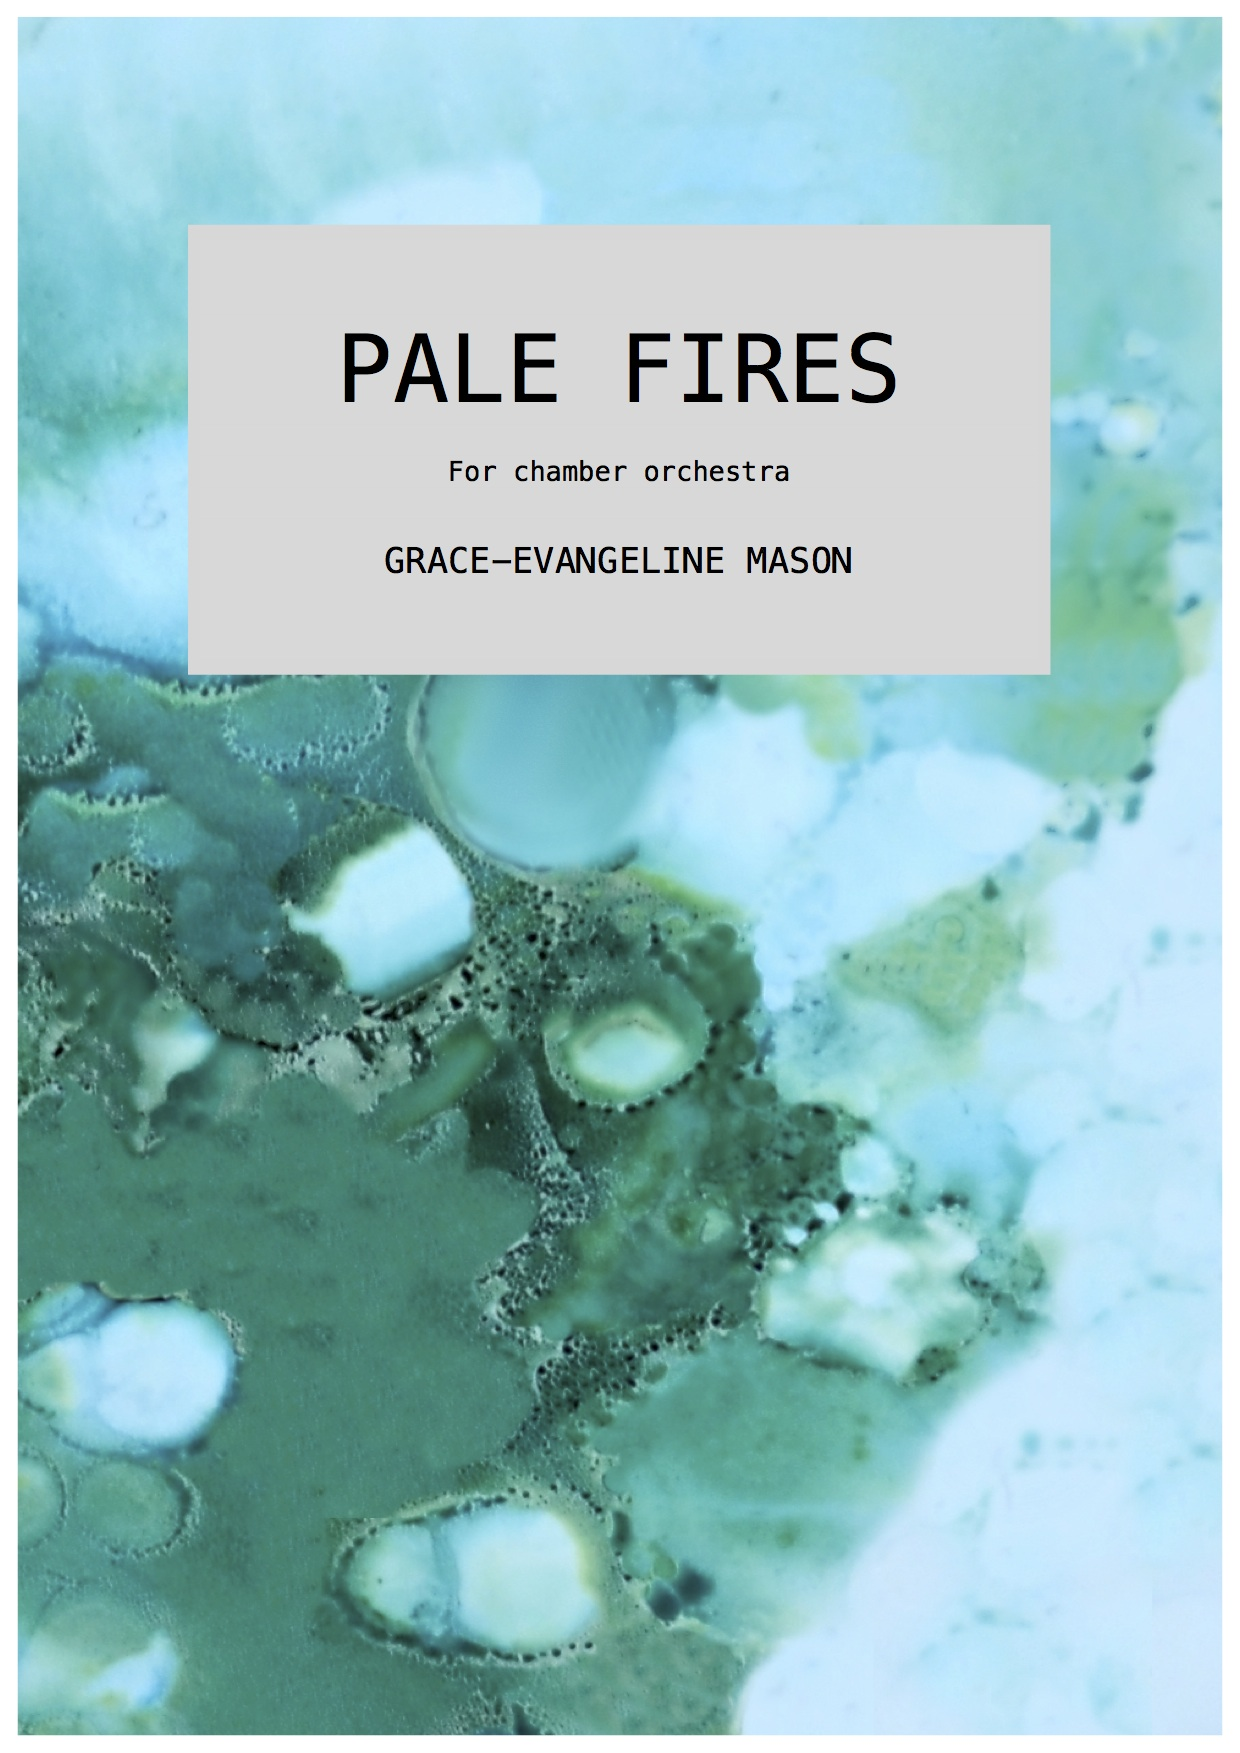 'PALE FIRES' (2017) - For chamber orchestrafl, cl, bsn, 2 hrn in F, 10 Strings (3.0.3.2.2)Approx. Duration: 5'First performed by Royal Liverpool Philharmonic Orchestra's Ensemble 10/10, conducted by Jessica Cottis (28/02/18)''PALE FIRES' (2017) is a short work for chamber ensemble inspired by the line in Shakespeare's play 'Timon of Athens', in which the moon is described as 'an arrant thief, and her pale fire she snatches from the sun'. This refers to the pale fire of moonlight that is only made possible by reflecting, and therefore 'stealing', sunlight. The piece seeks to create an ethereal atmosphere, in which delicate, and sometimes distorted, repeating fragments emulate and mirror each other to reflect the creation of moonlight's pale fire.' ©G.E.M.2017©Cover Image: 'Pale Fires' Painting by Grace-Evangeline Mason 2017